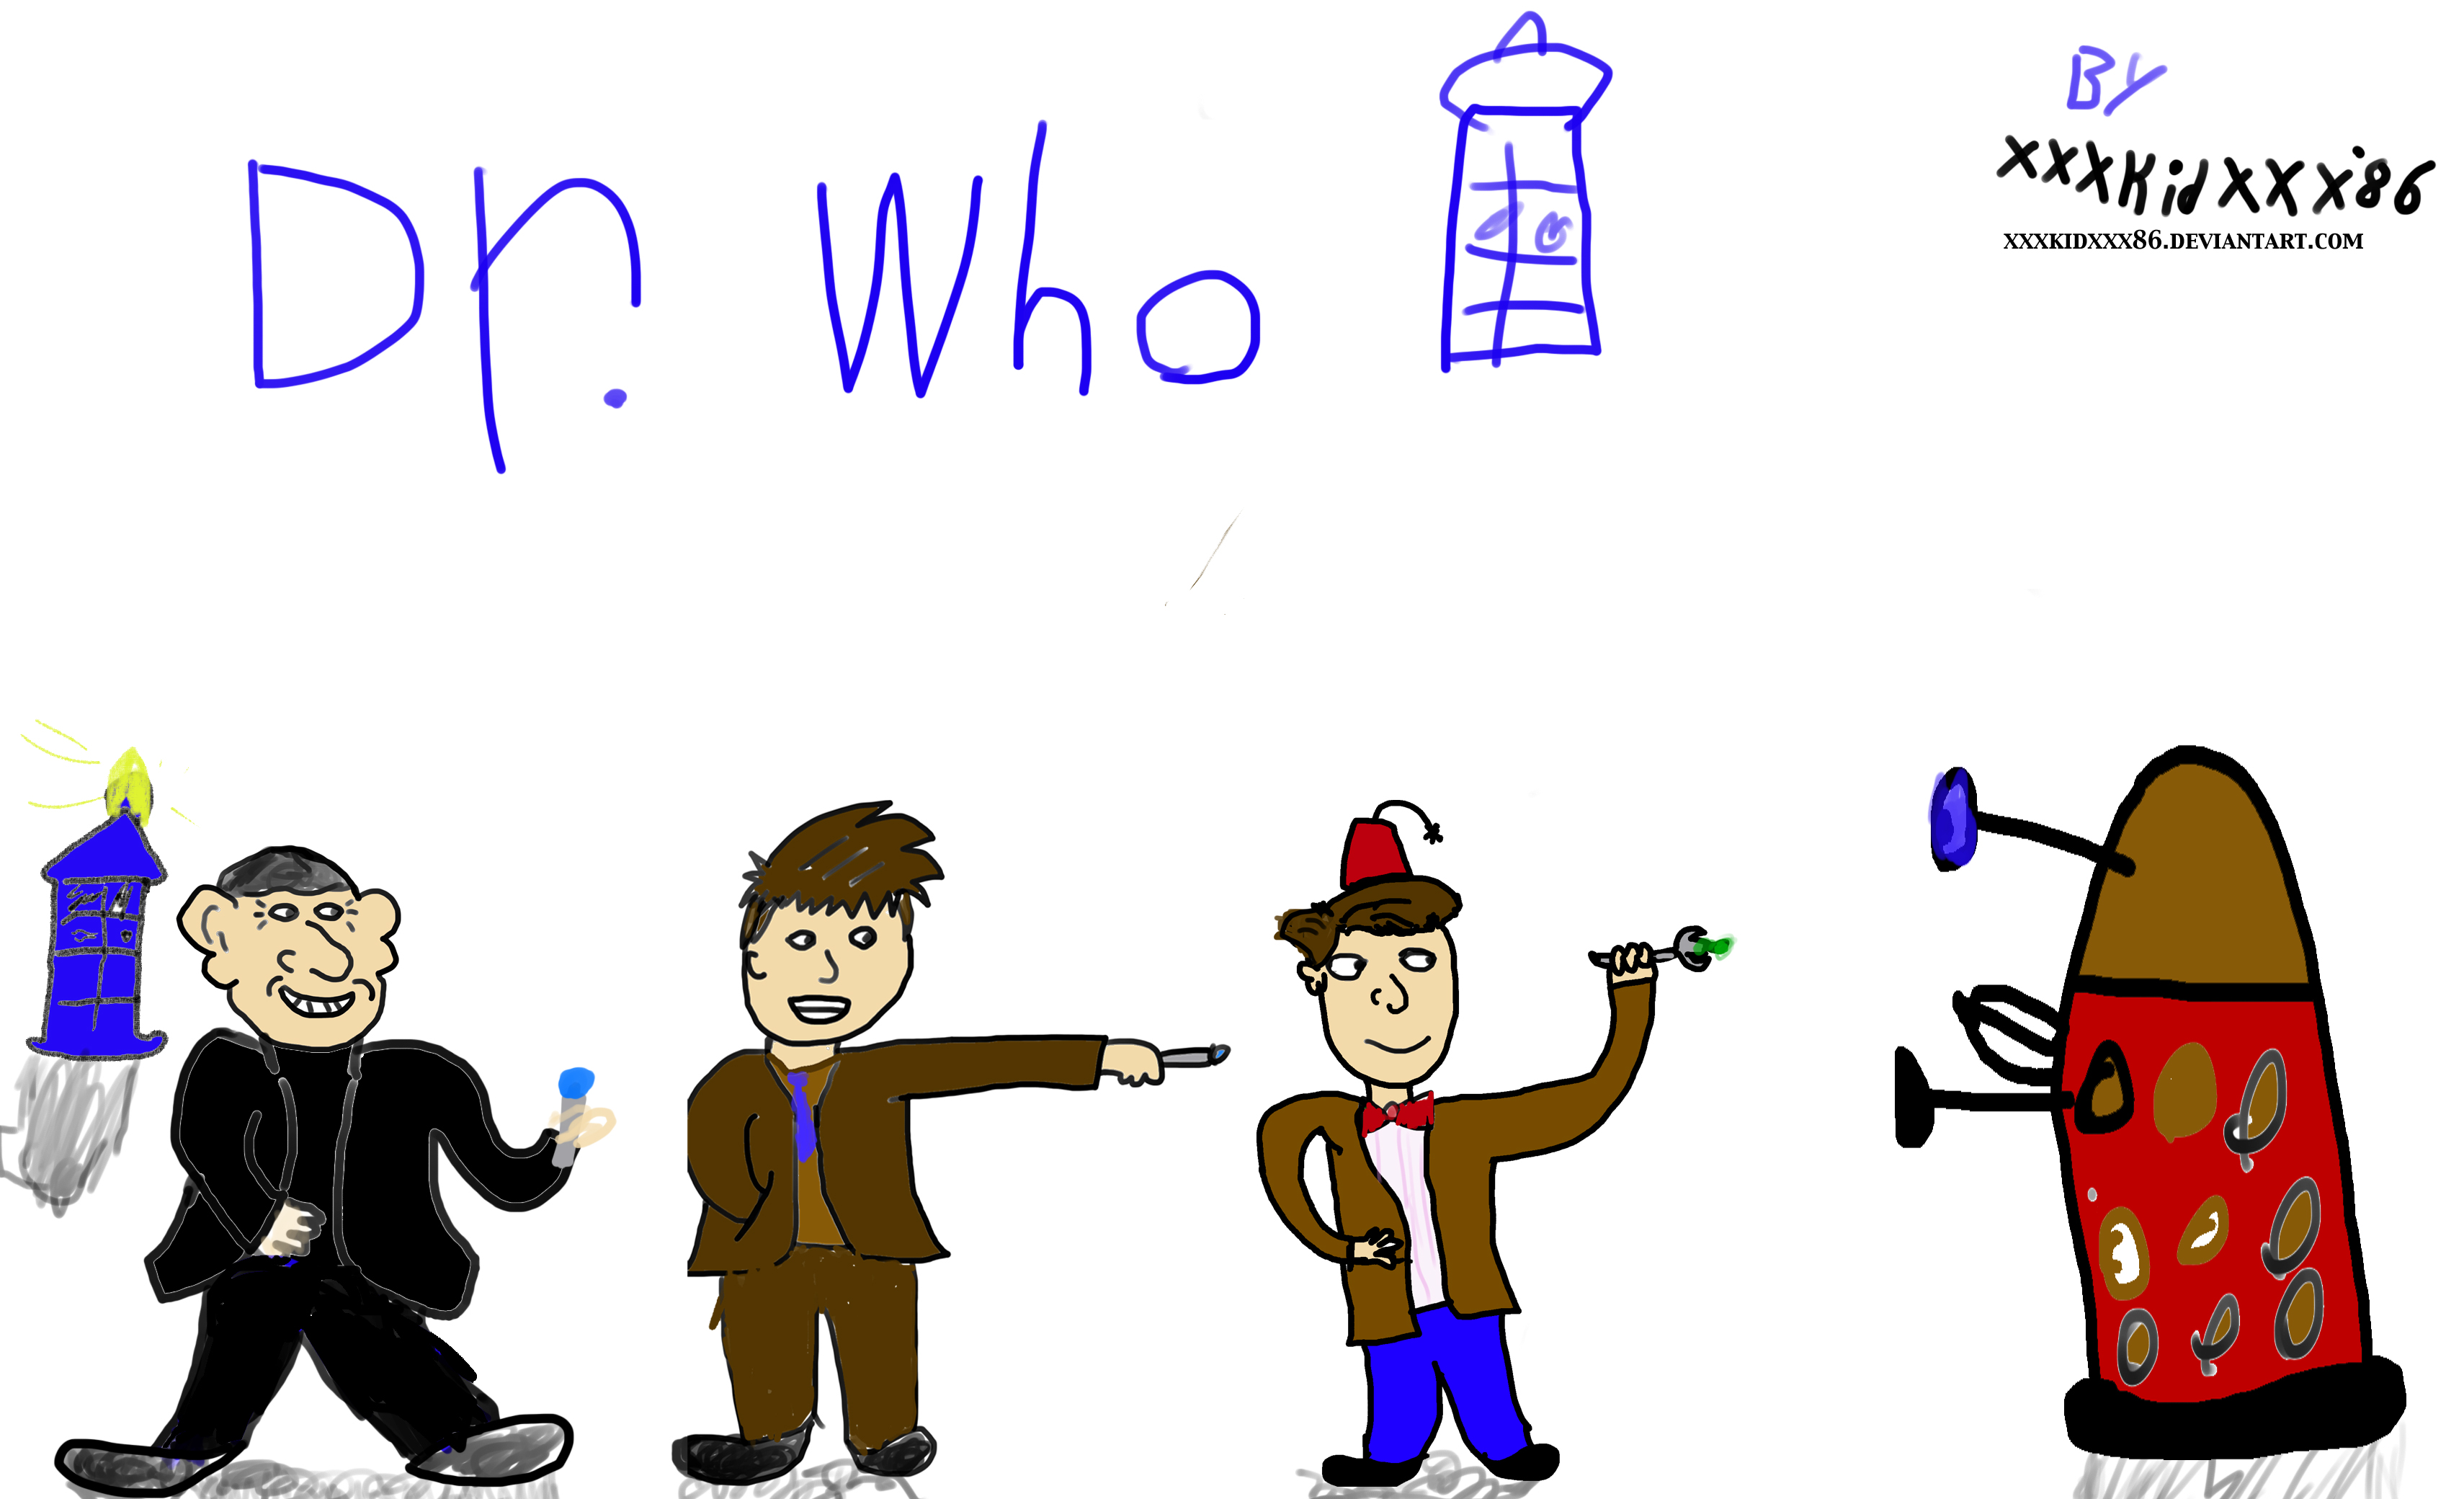 Doctor Who wall paper made by me by xxxkidxxx86